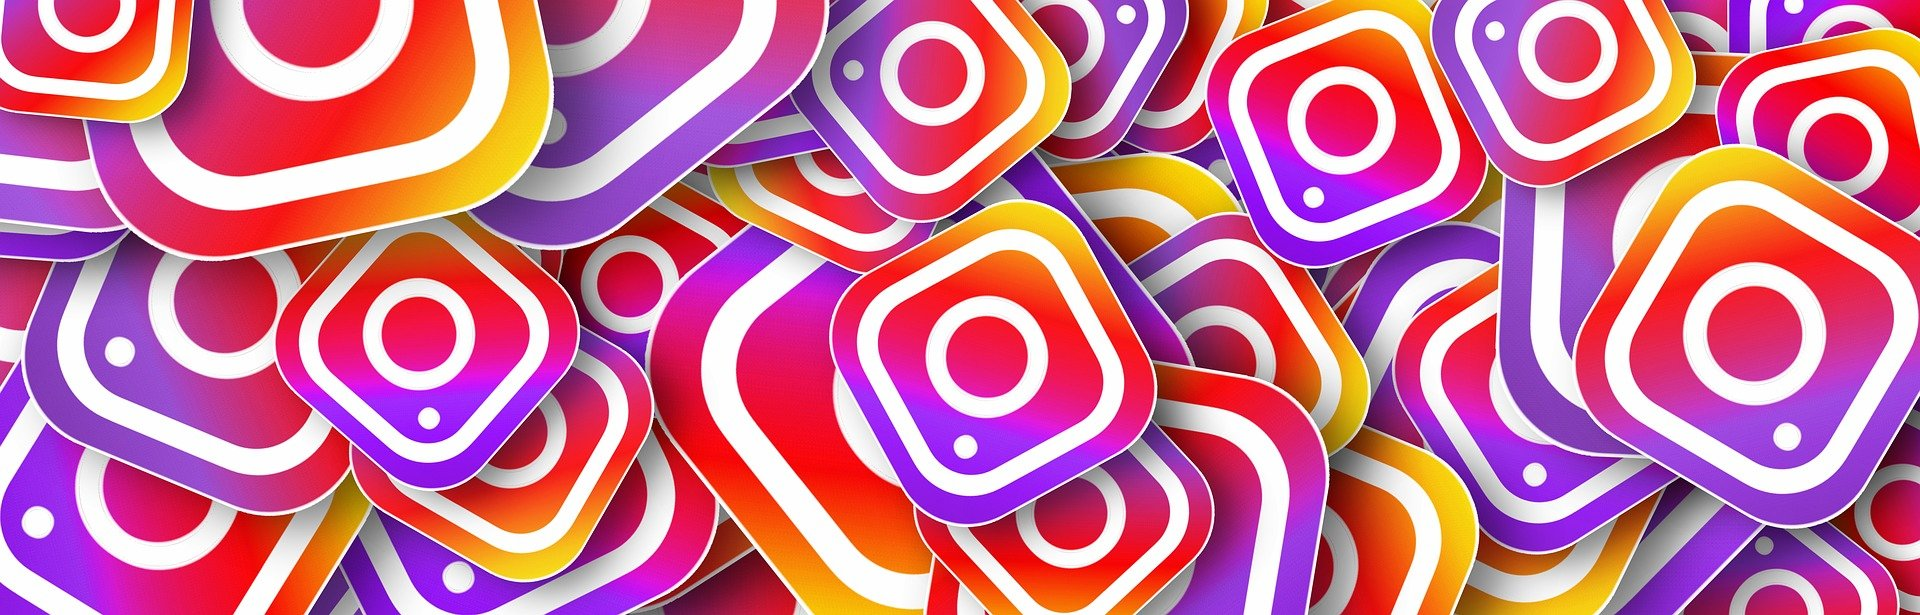 What are the reasons to buy Instagram likes?